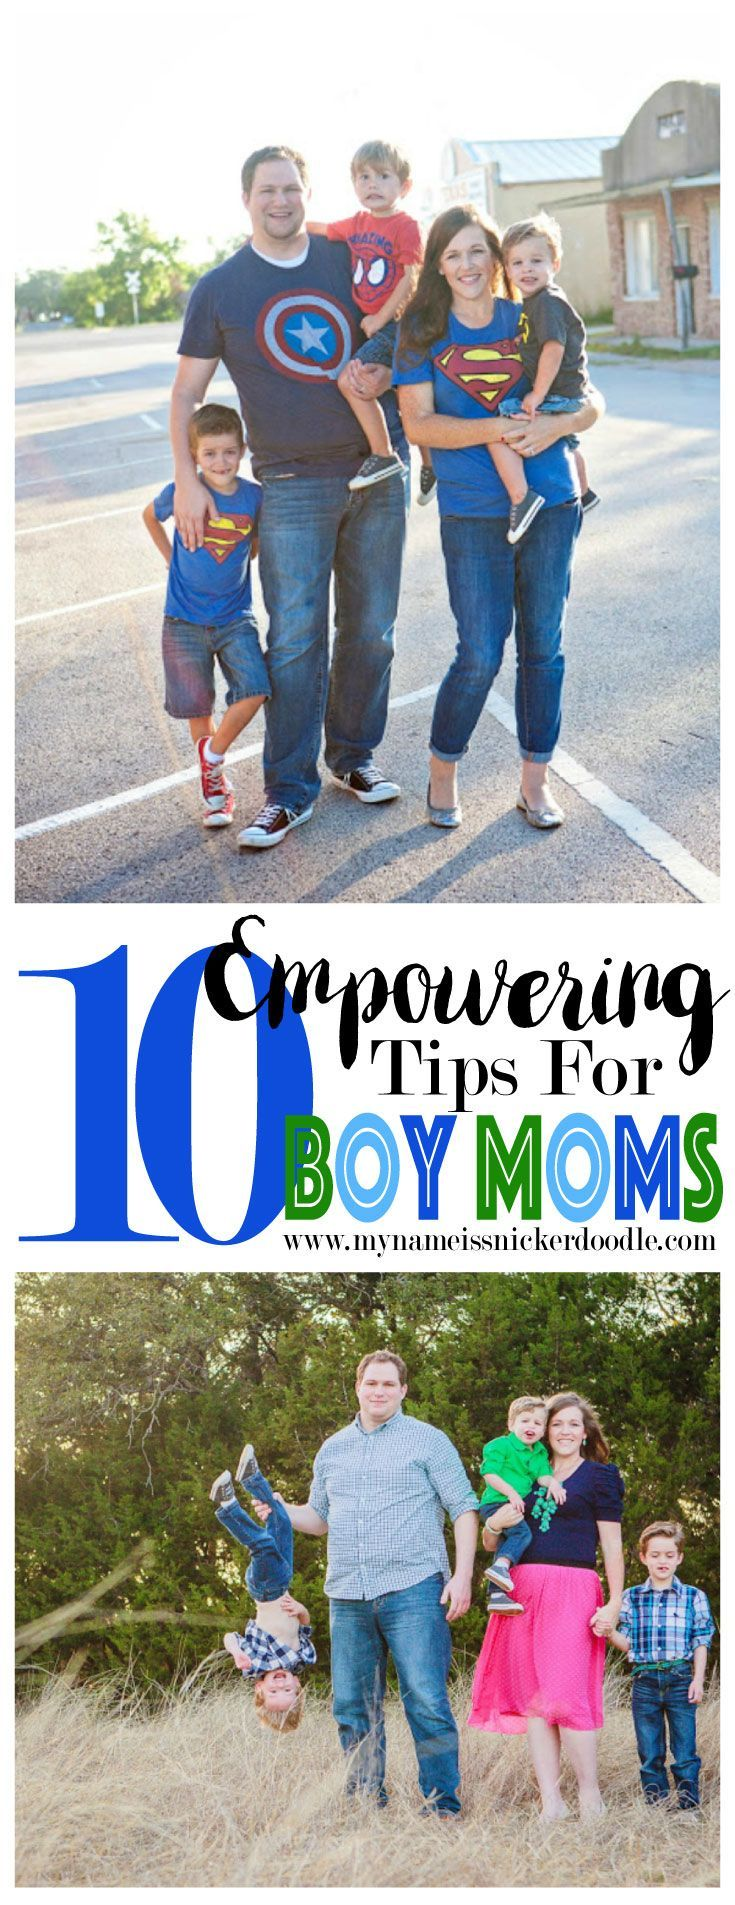 Being a mom of all boys can be tough, but here are a few tips to help you not only survive, but be super fabulous at it!  |  mynameissnickerdoodle.com